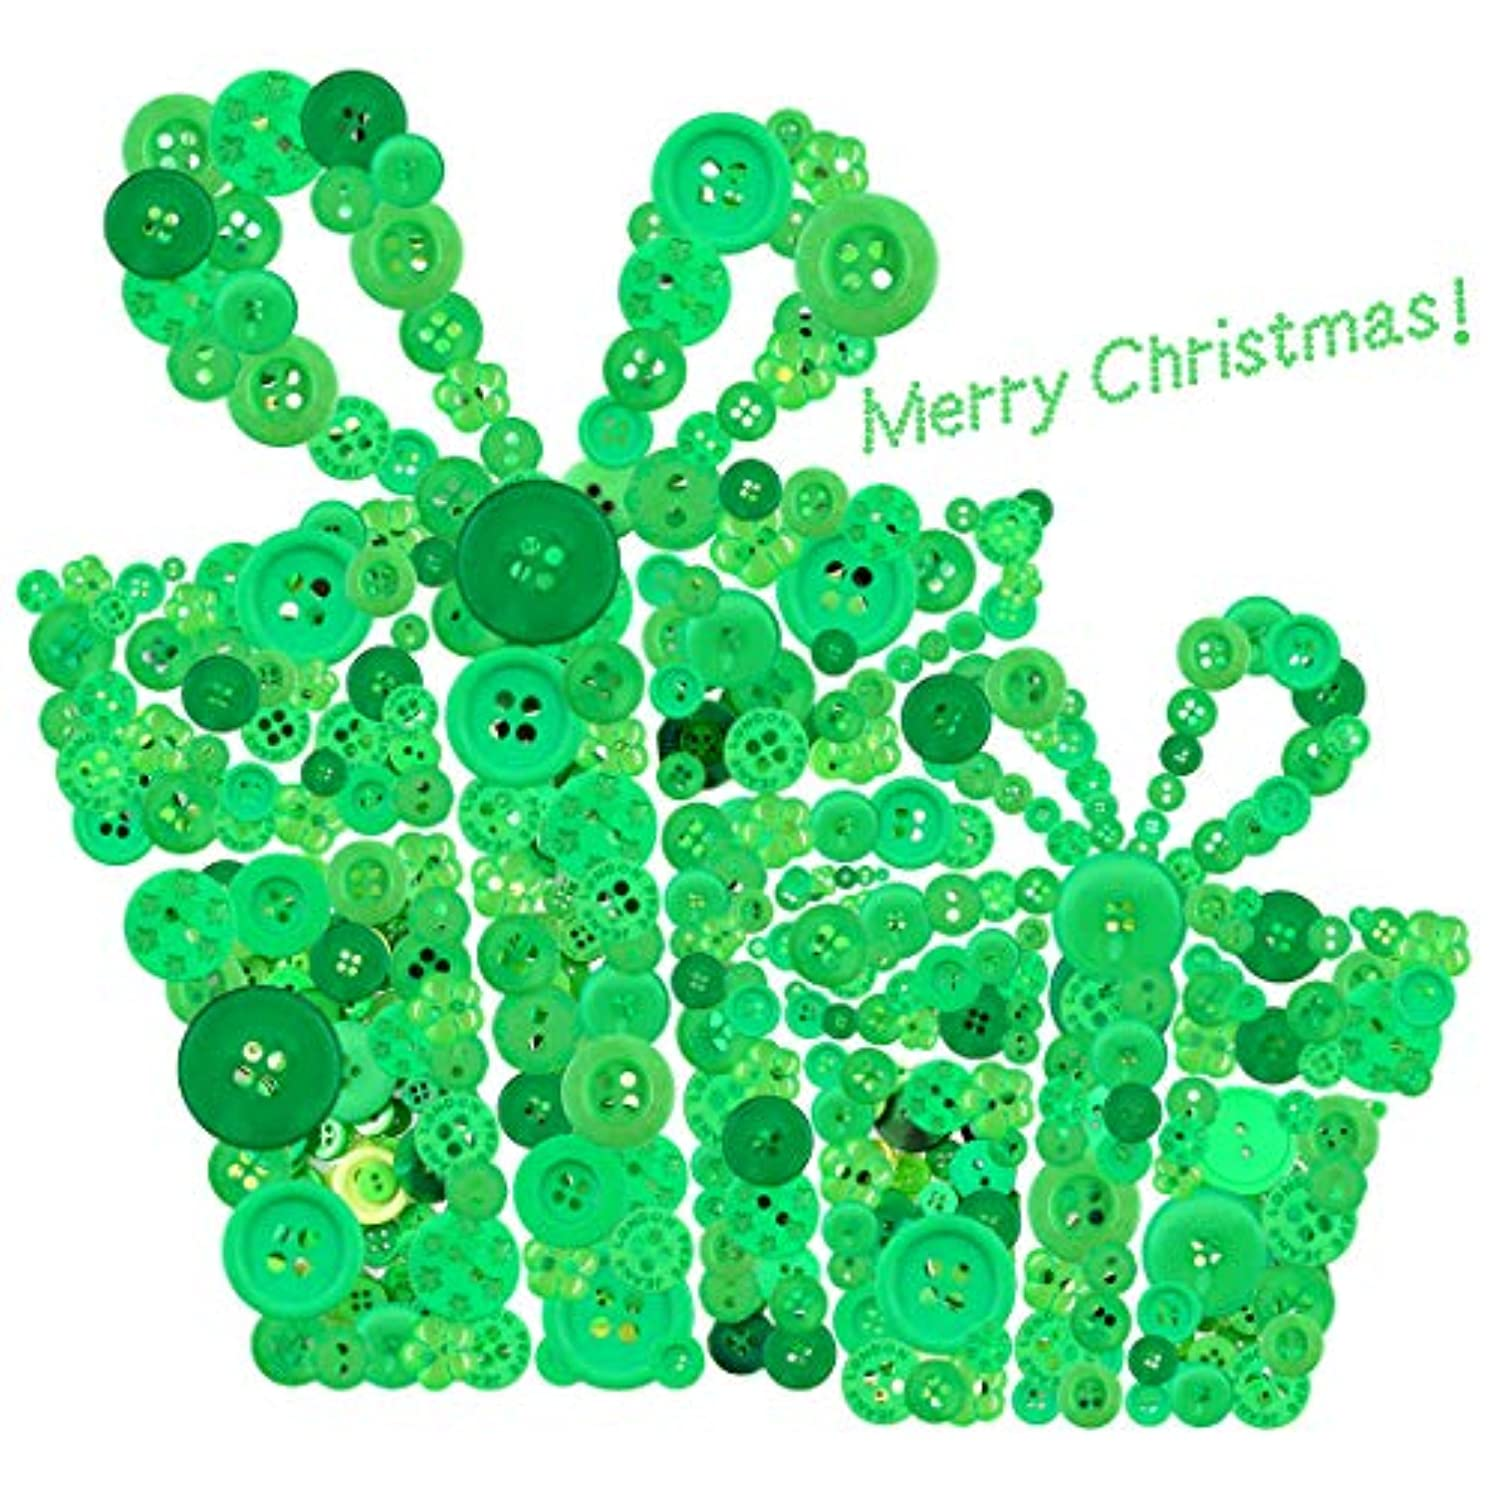 Glarks 1000-Pieces Christmas Buttons 2 Holes and 4 Holes Green Round Craft Resin Buttons for Sewing Scrapbooking Christmas DIY Craft Decoration (Green)